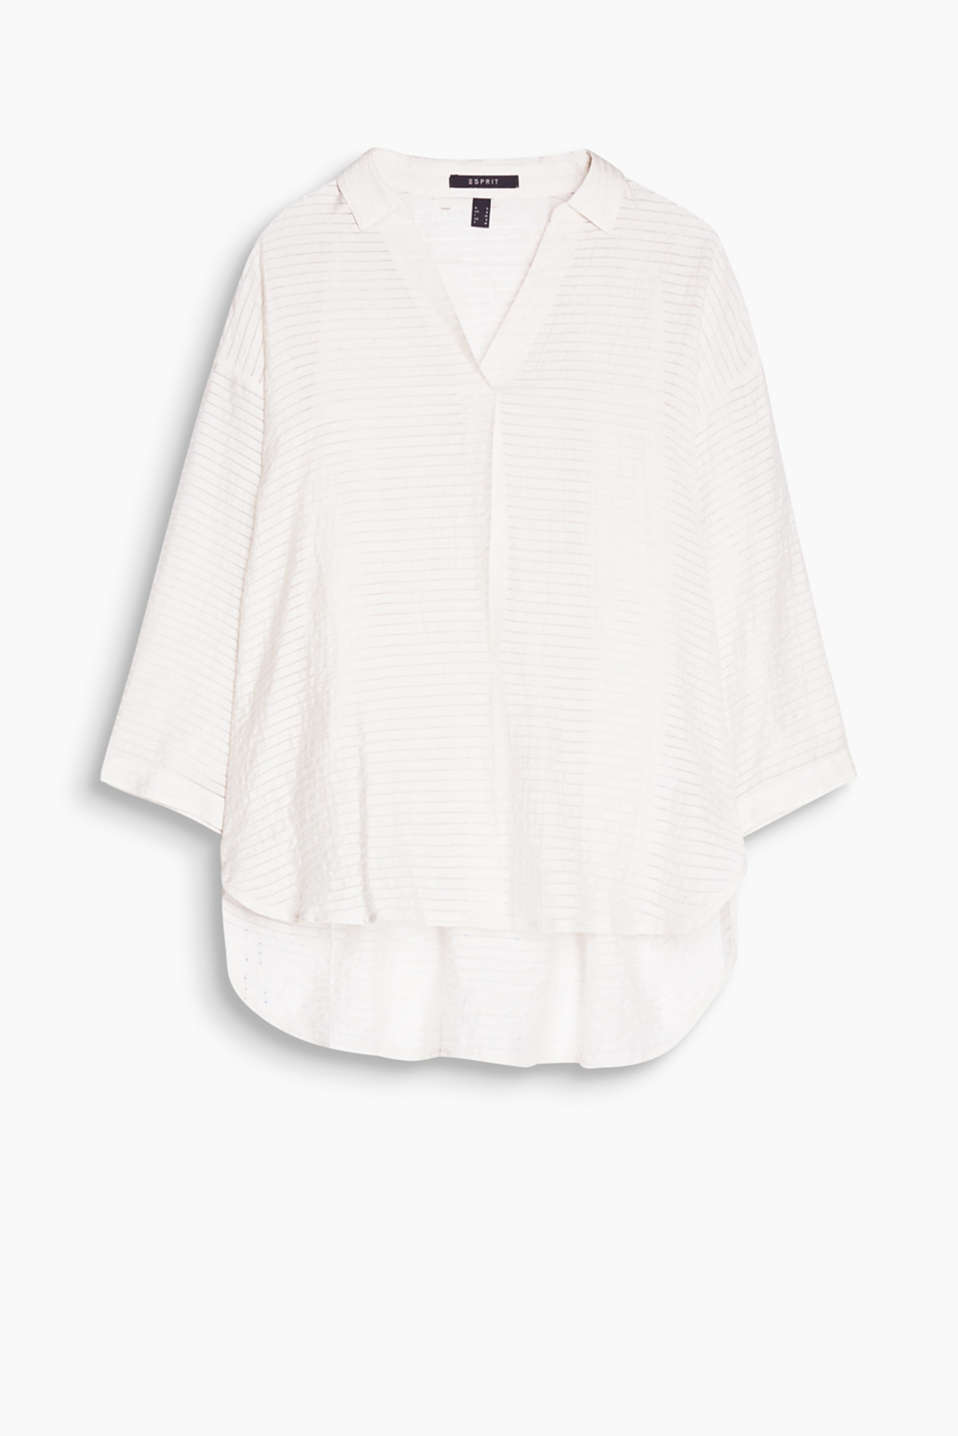 Lightweight, casual blouse with sheer stripes and batwing sleeves in a cool linen blend